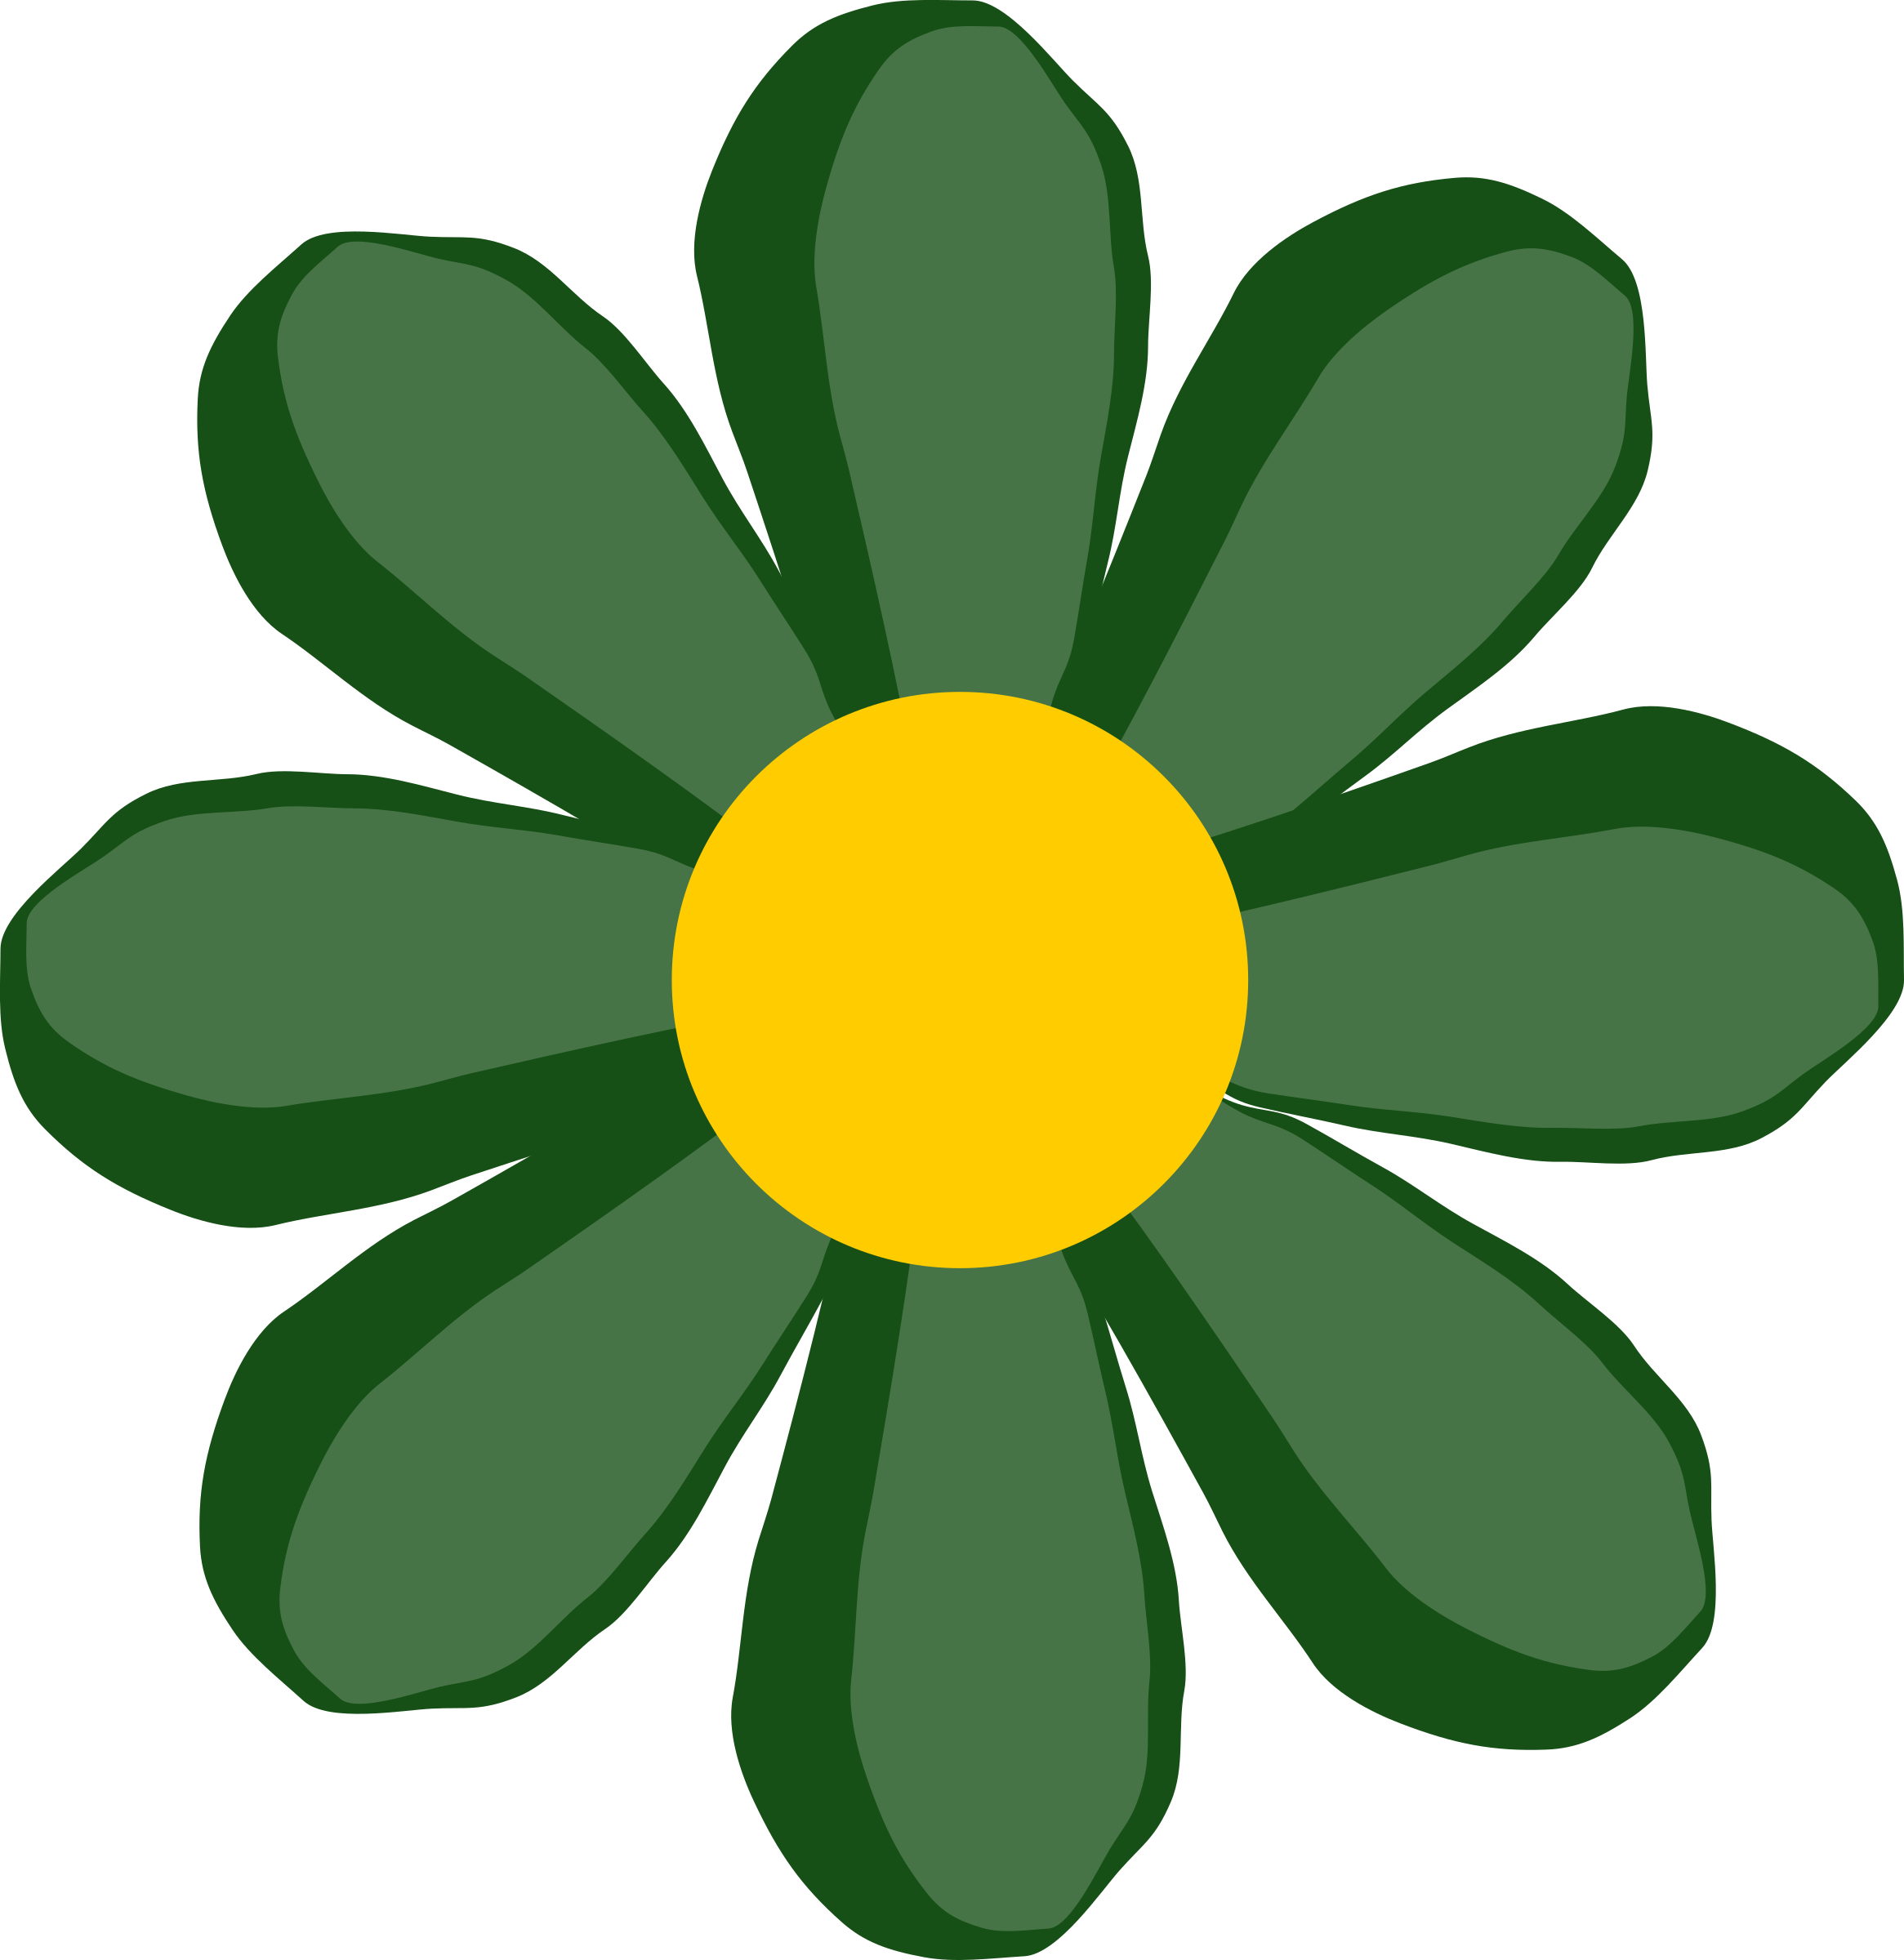 Clipart green flower